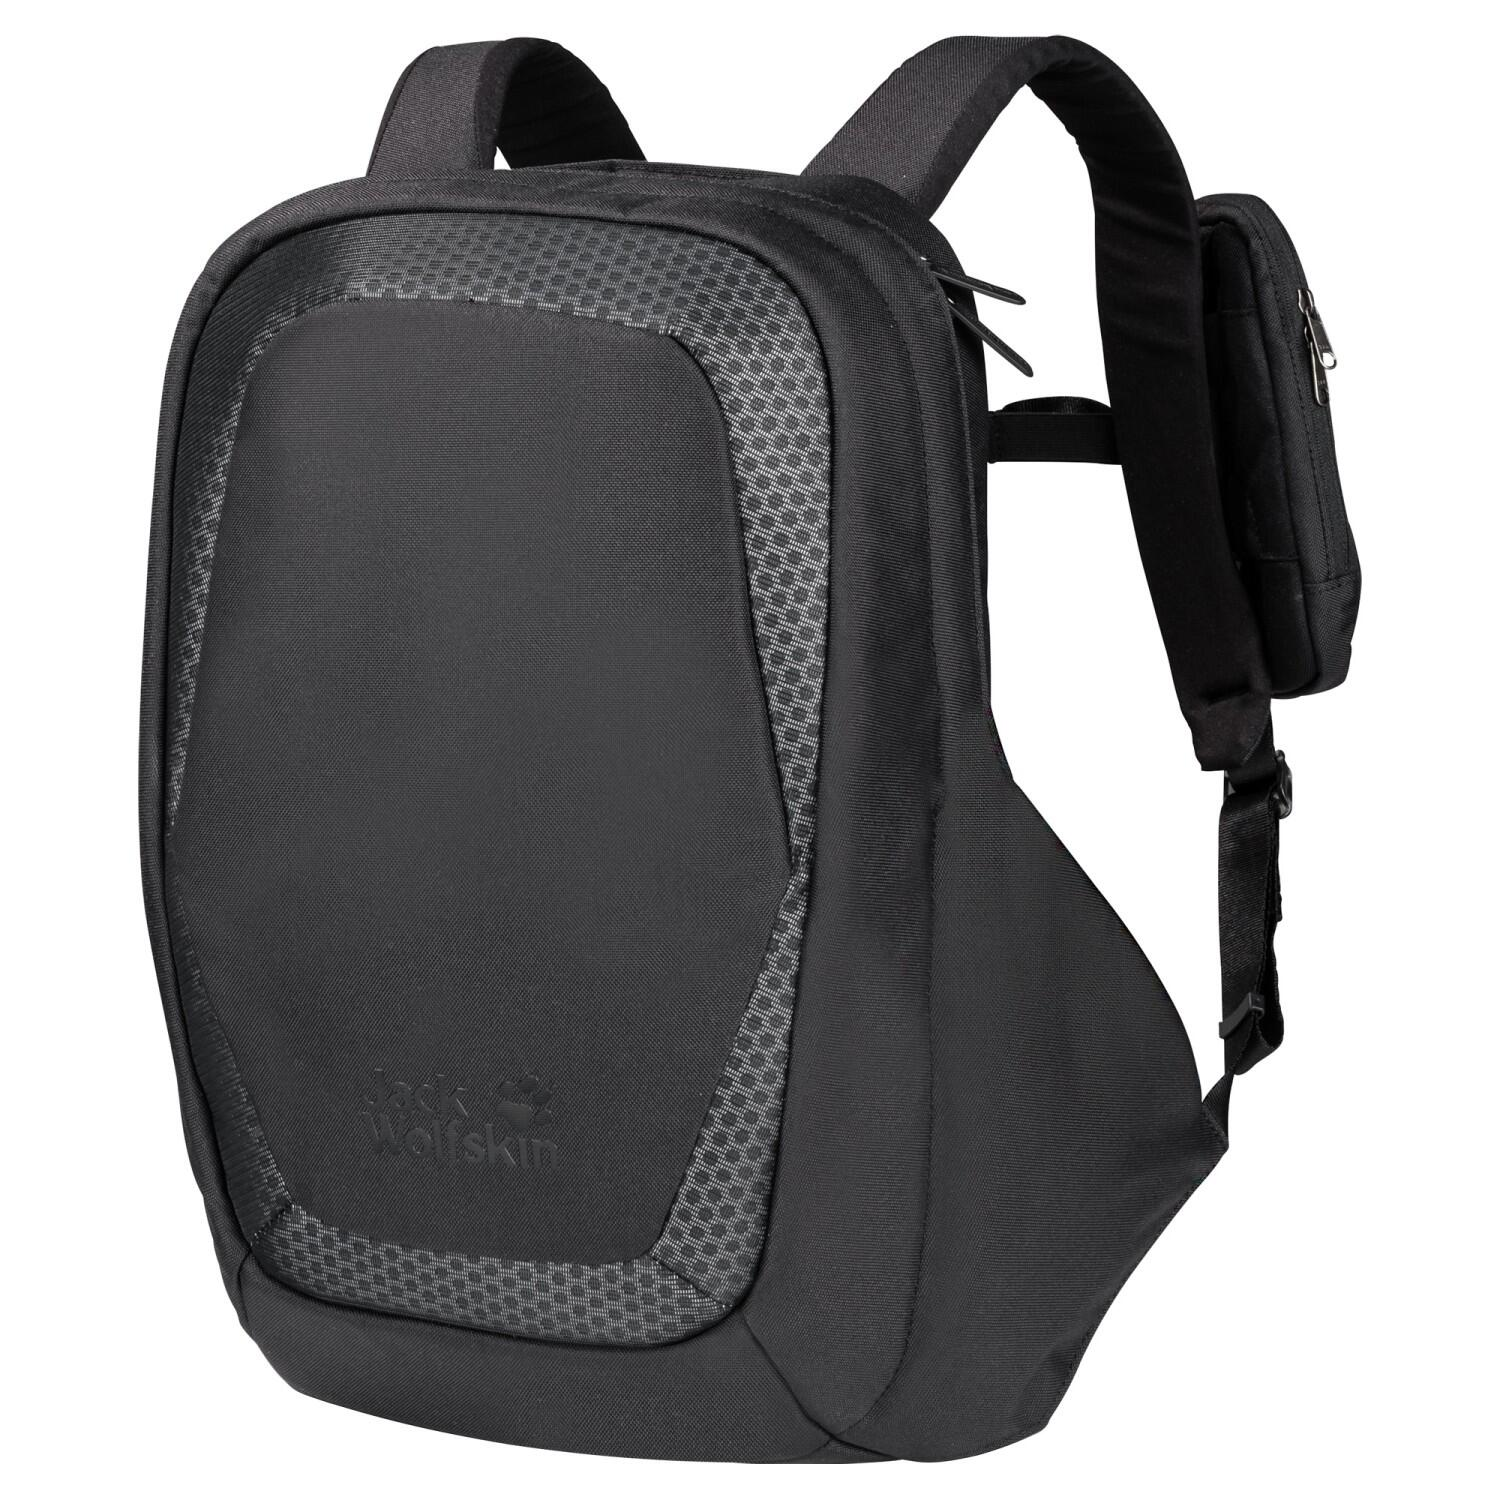 jack-wolfskin-power-on-18-rucksack-mit-powerbank-port-farbe-6000-black-